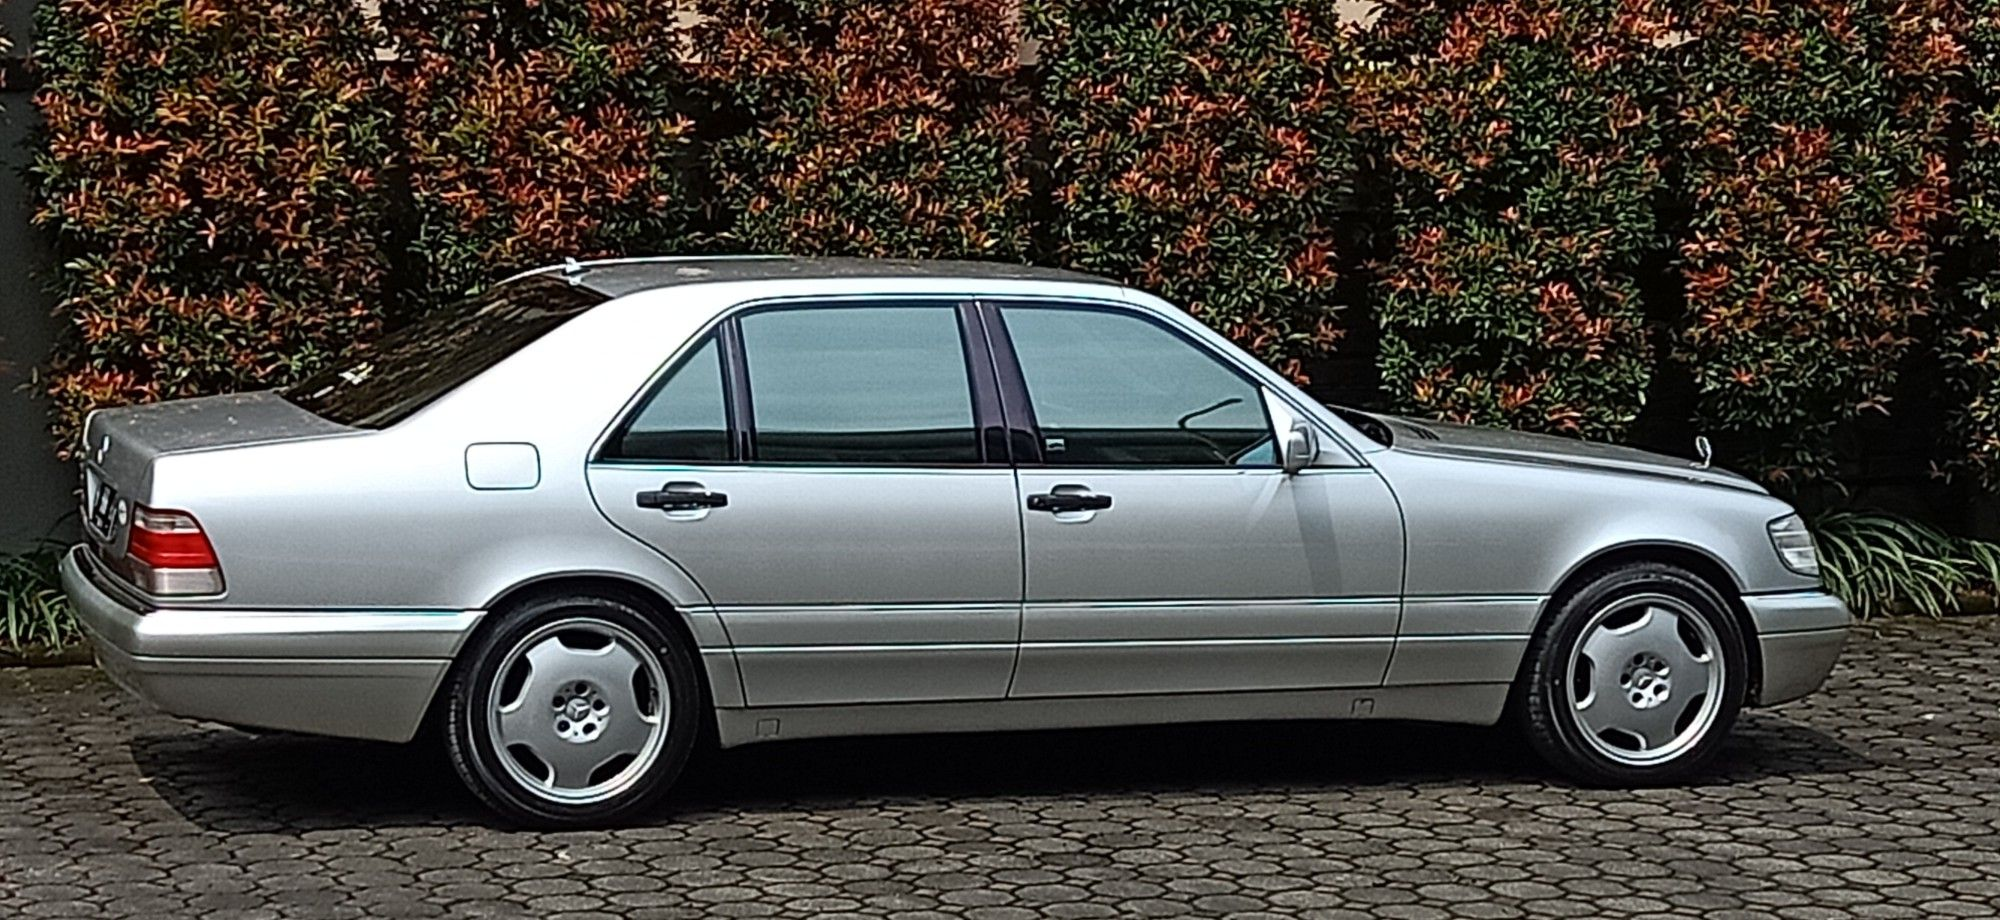 Beautifully Silver W140 Mercedes Benz Cars Mercedes Benz